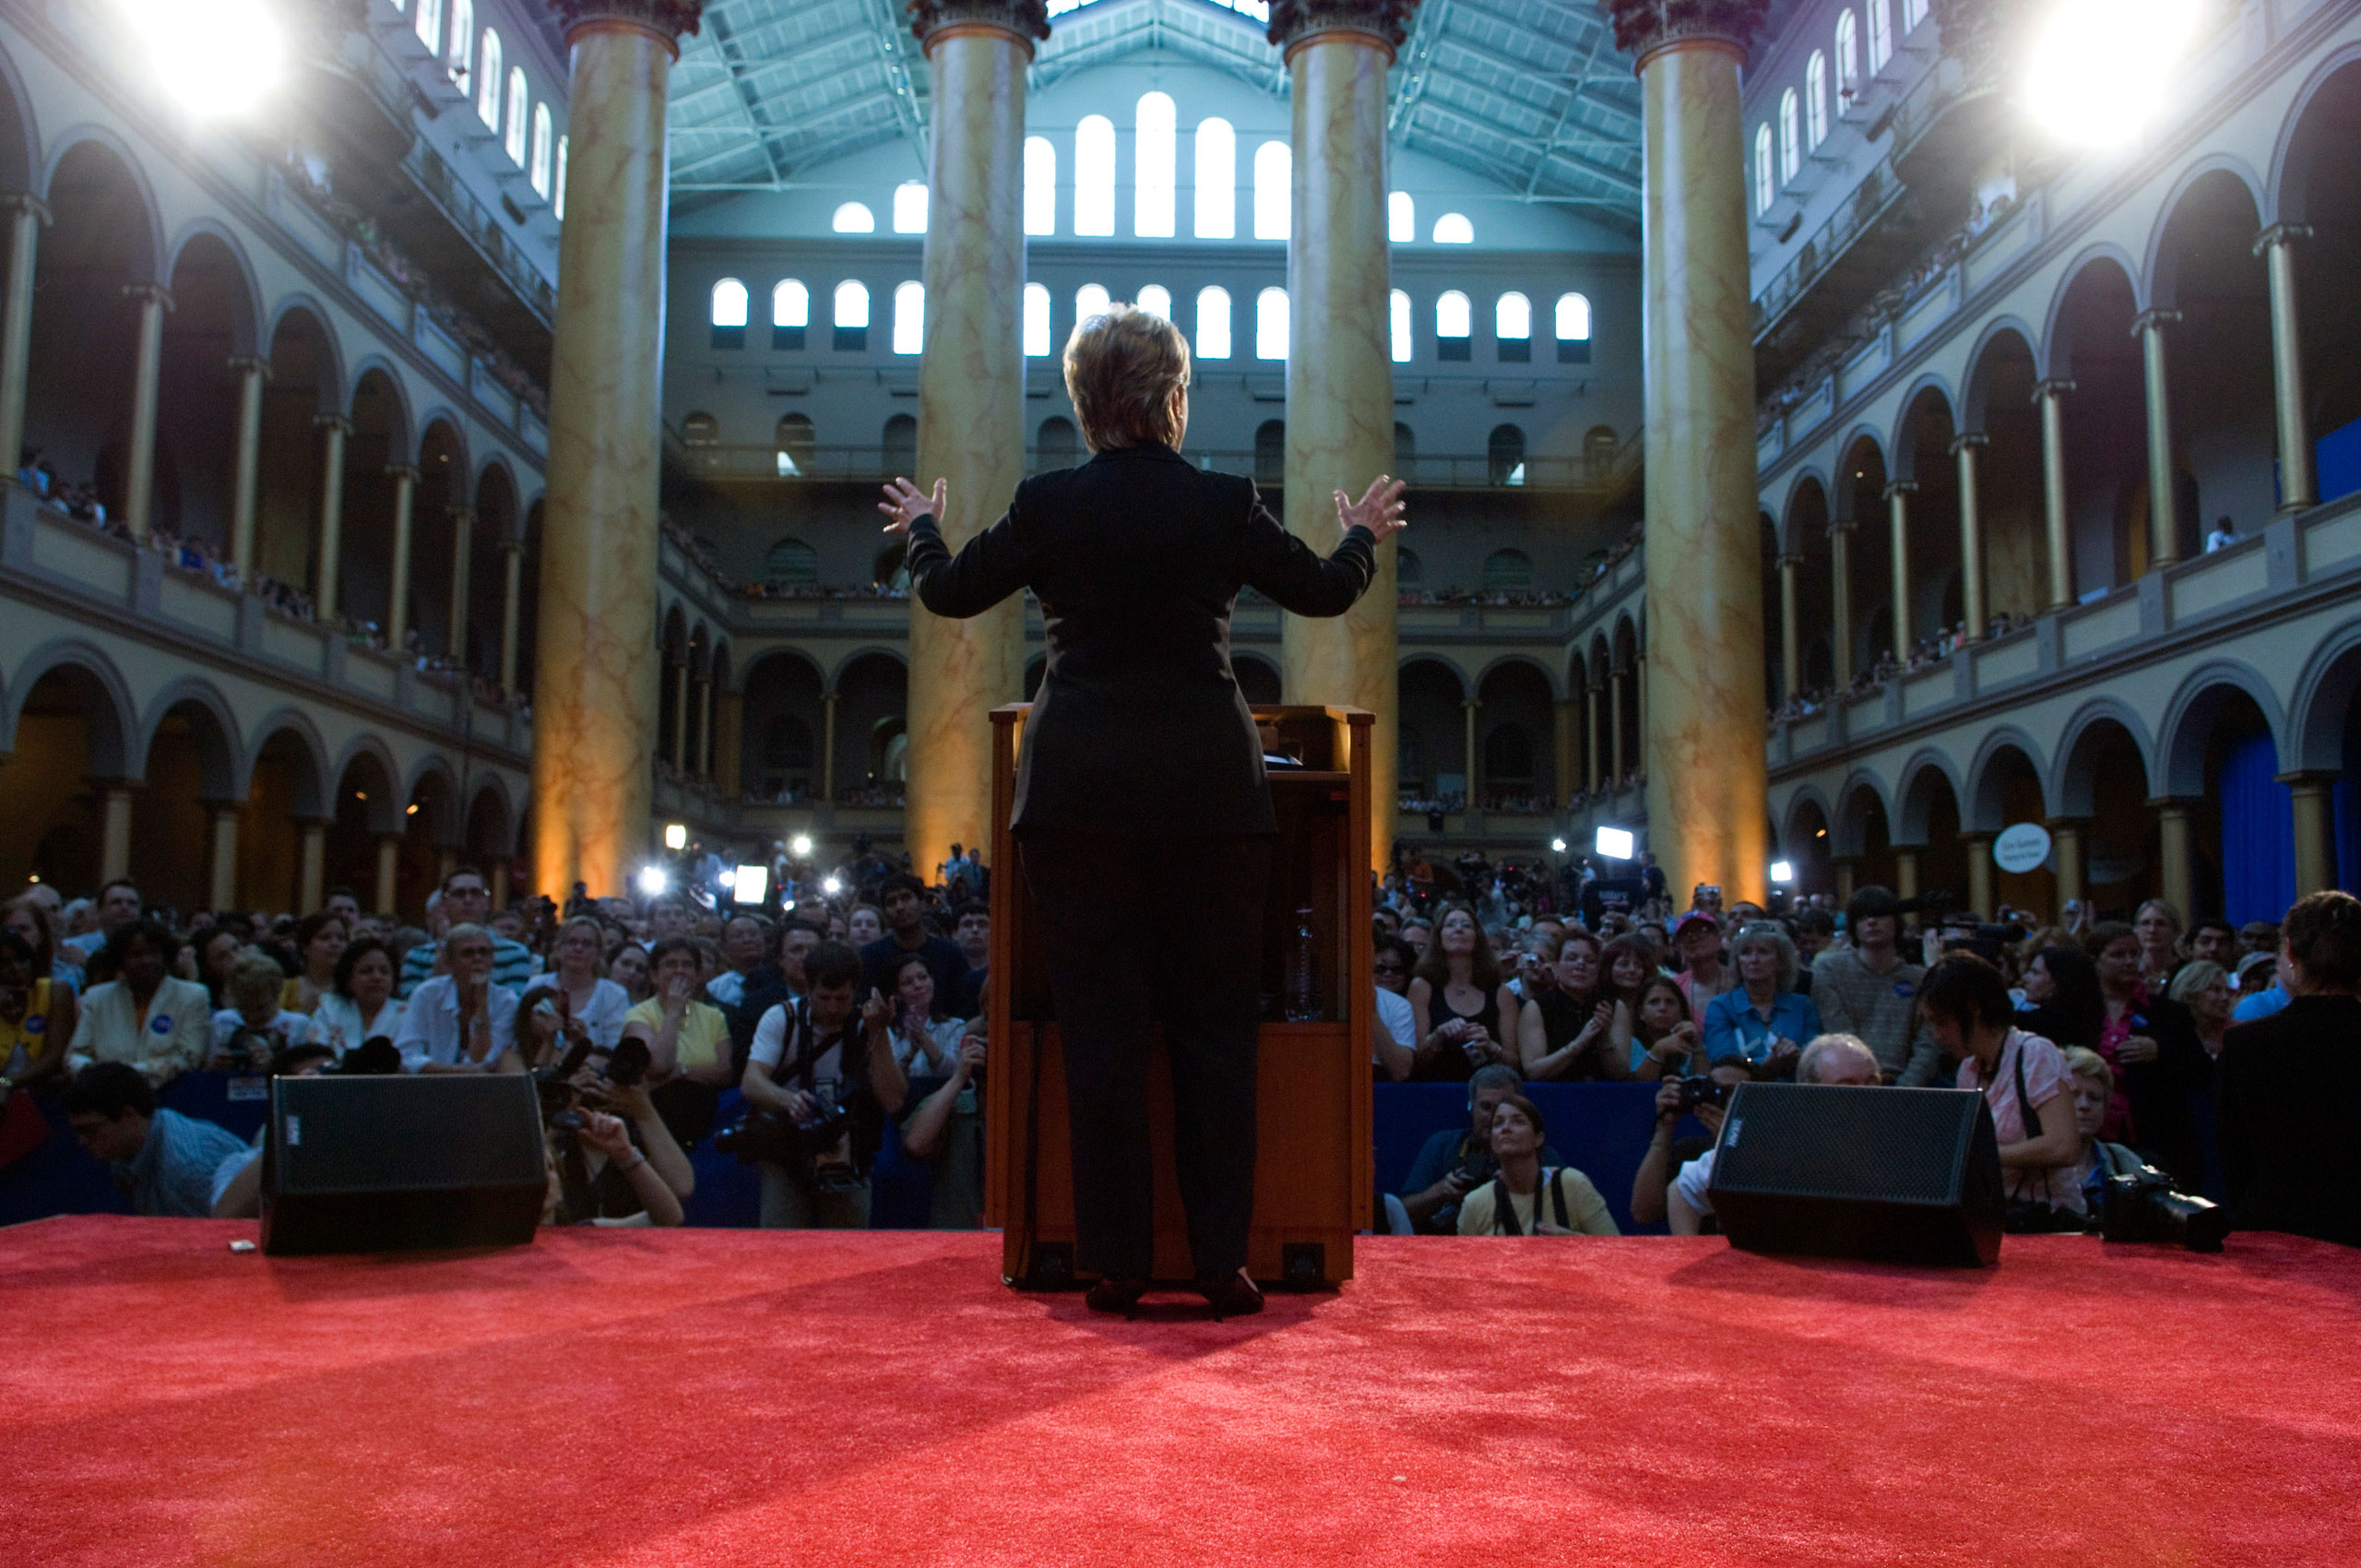 """Hillary Clinton's concession speech at the National Building Museum in Washington DC. The place was packed with her supporters as she gave her """"18 Million Cracks in the Ceiling"""" speech."""